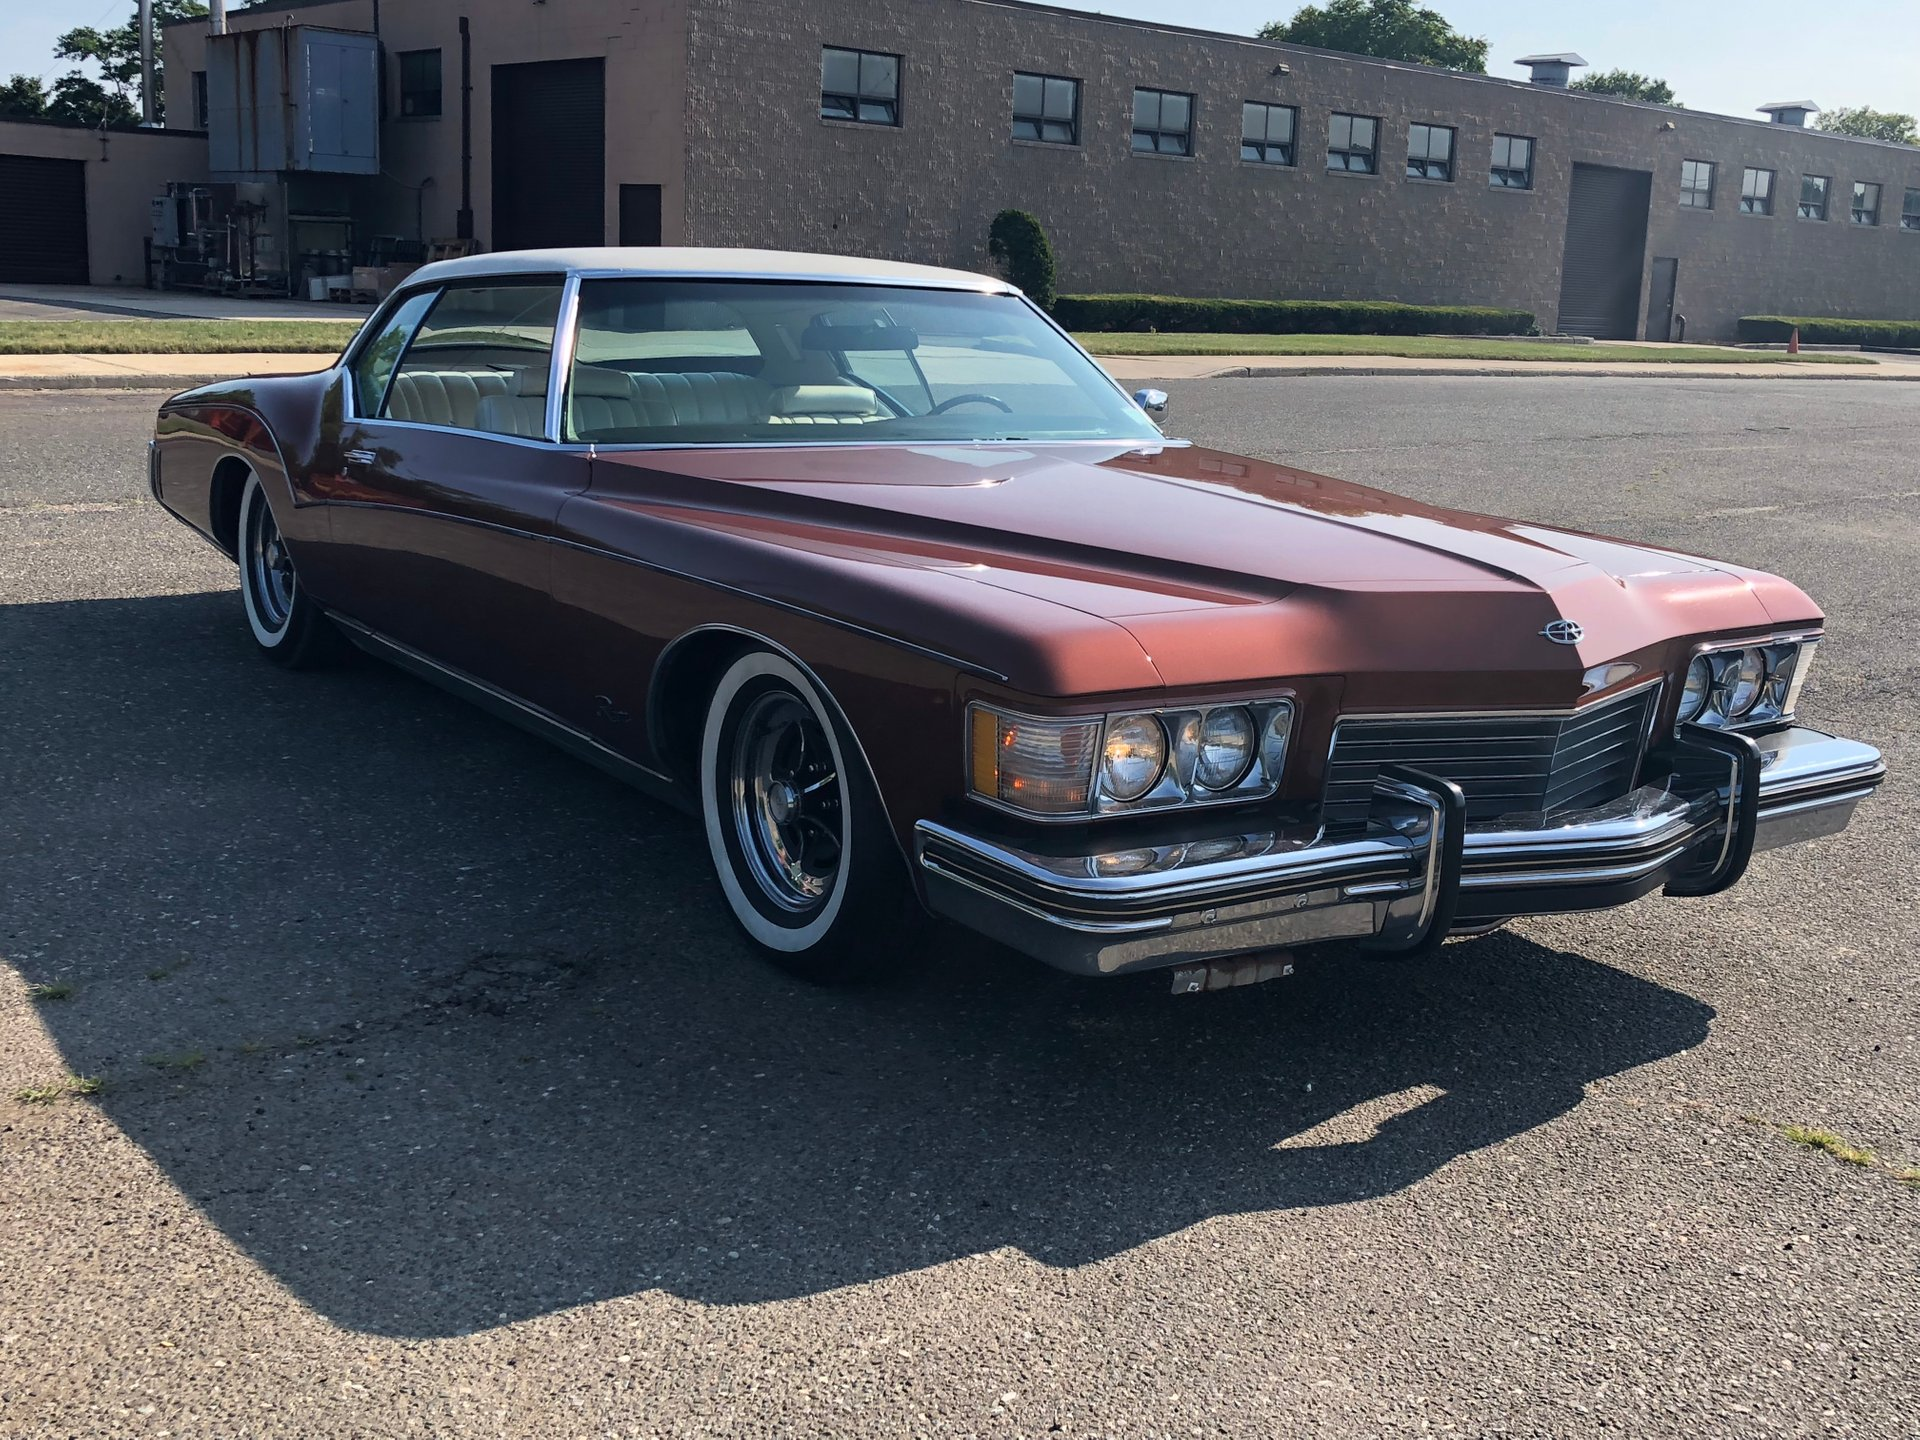 1973 Buick Riviera Boat Tail for sale #94060 | MCG